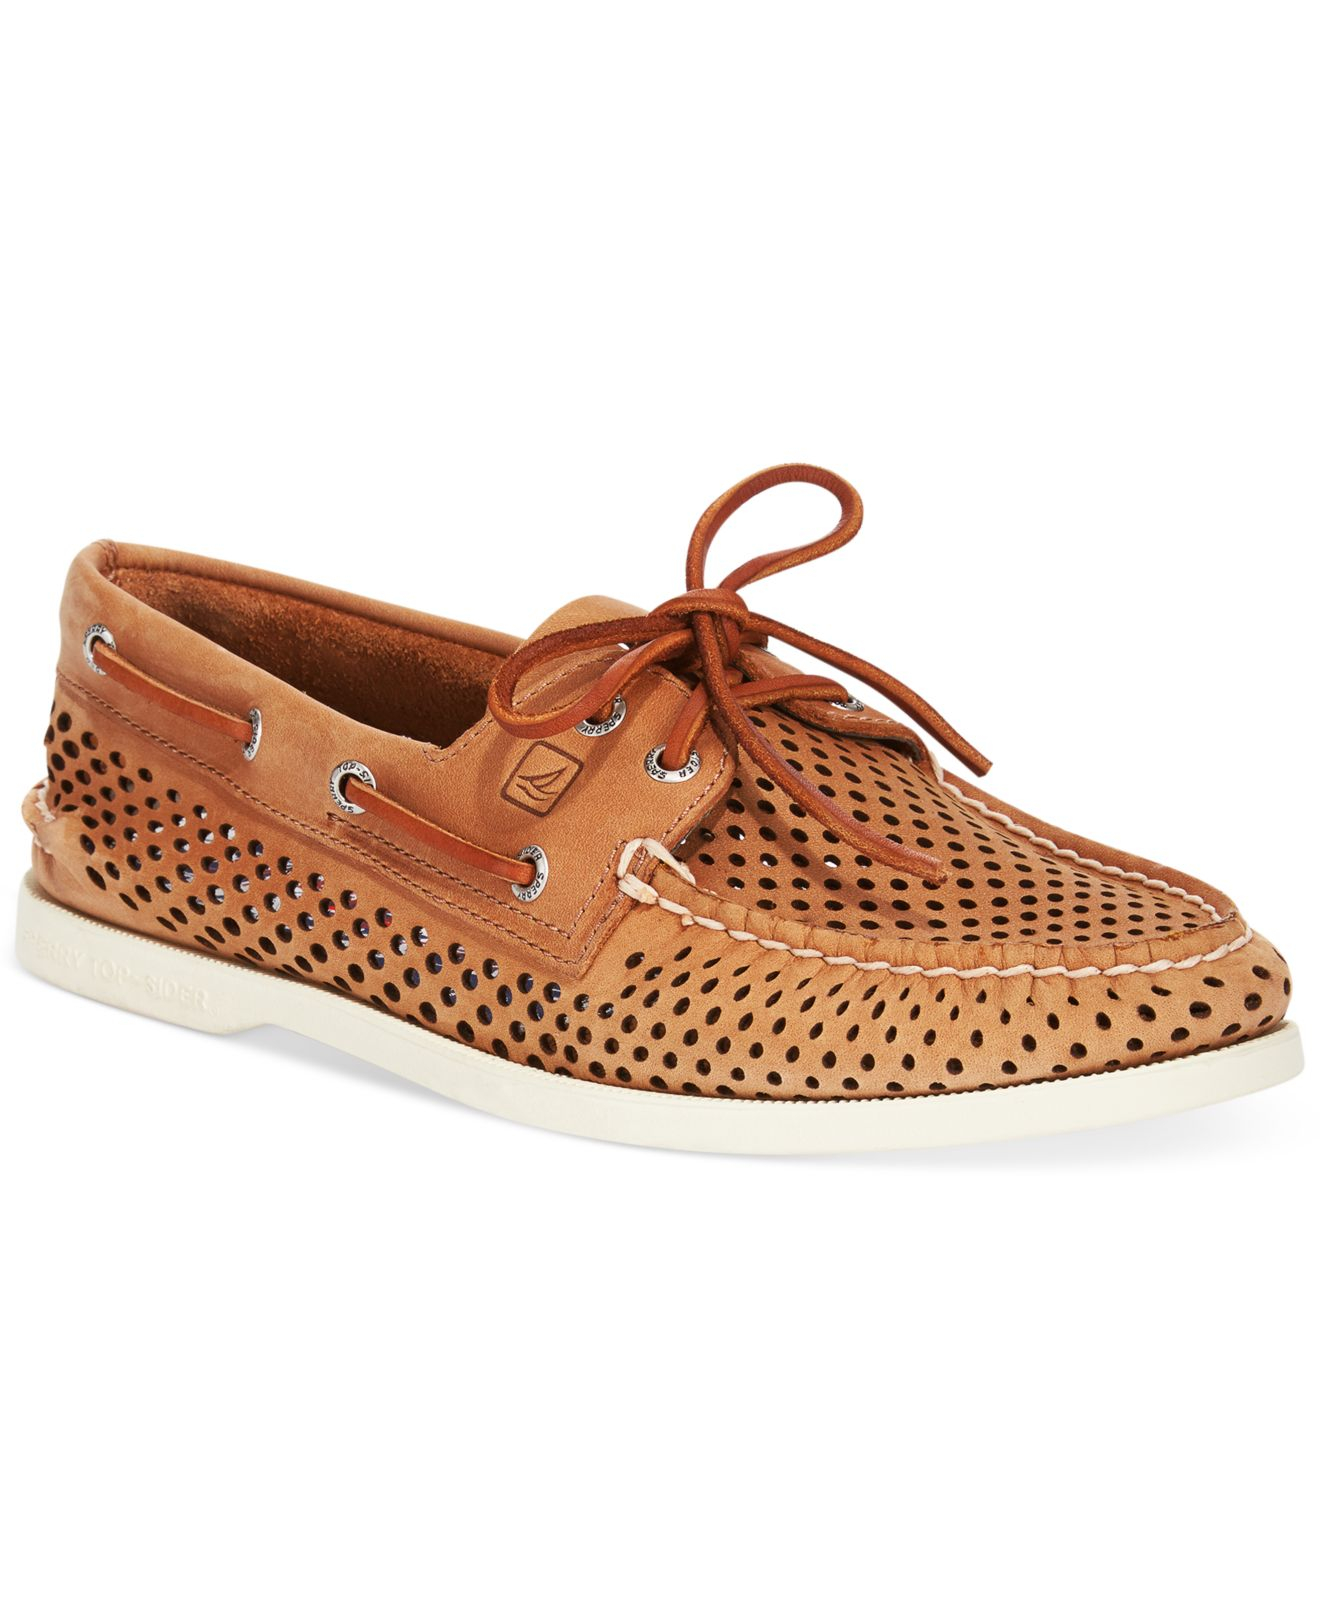 Sperry Top Sider Men S A O Boat Shoes